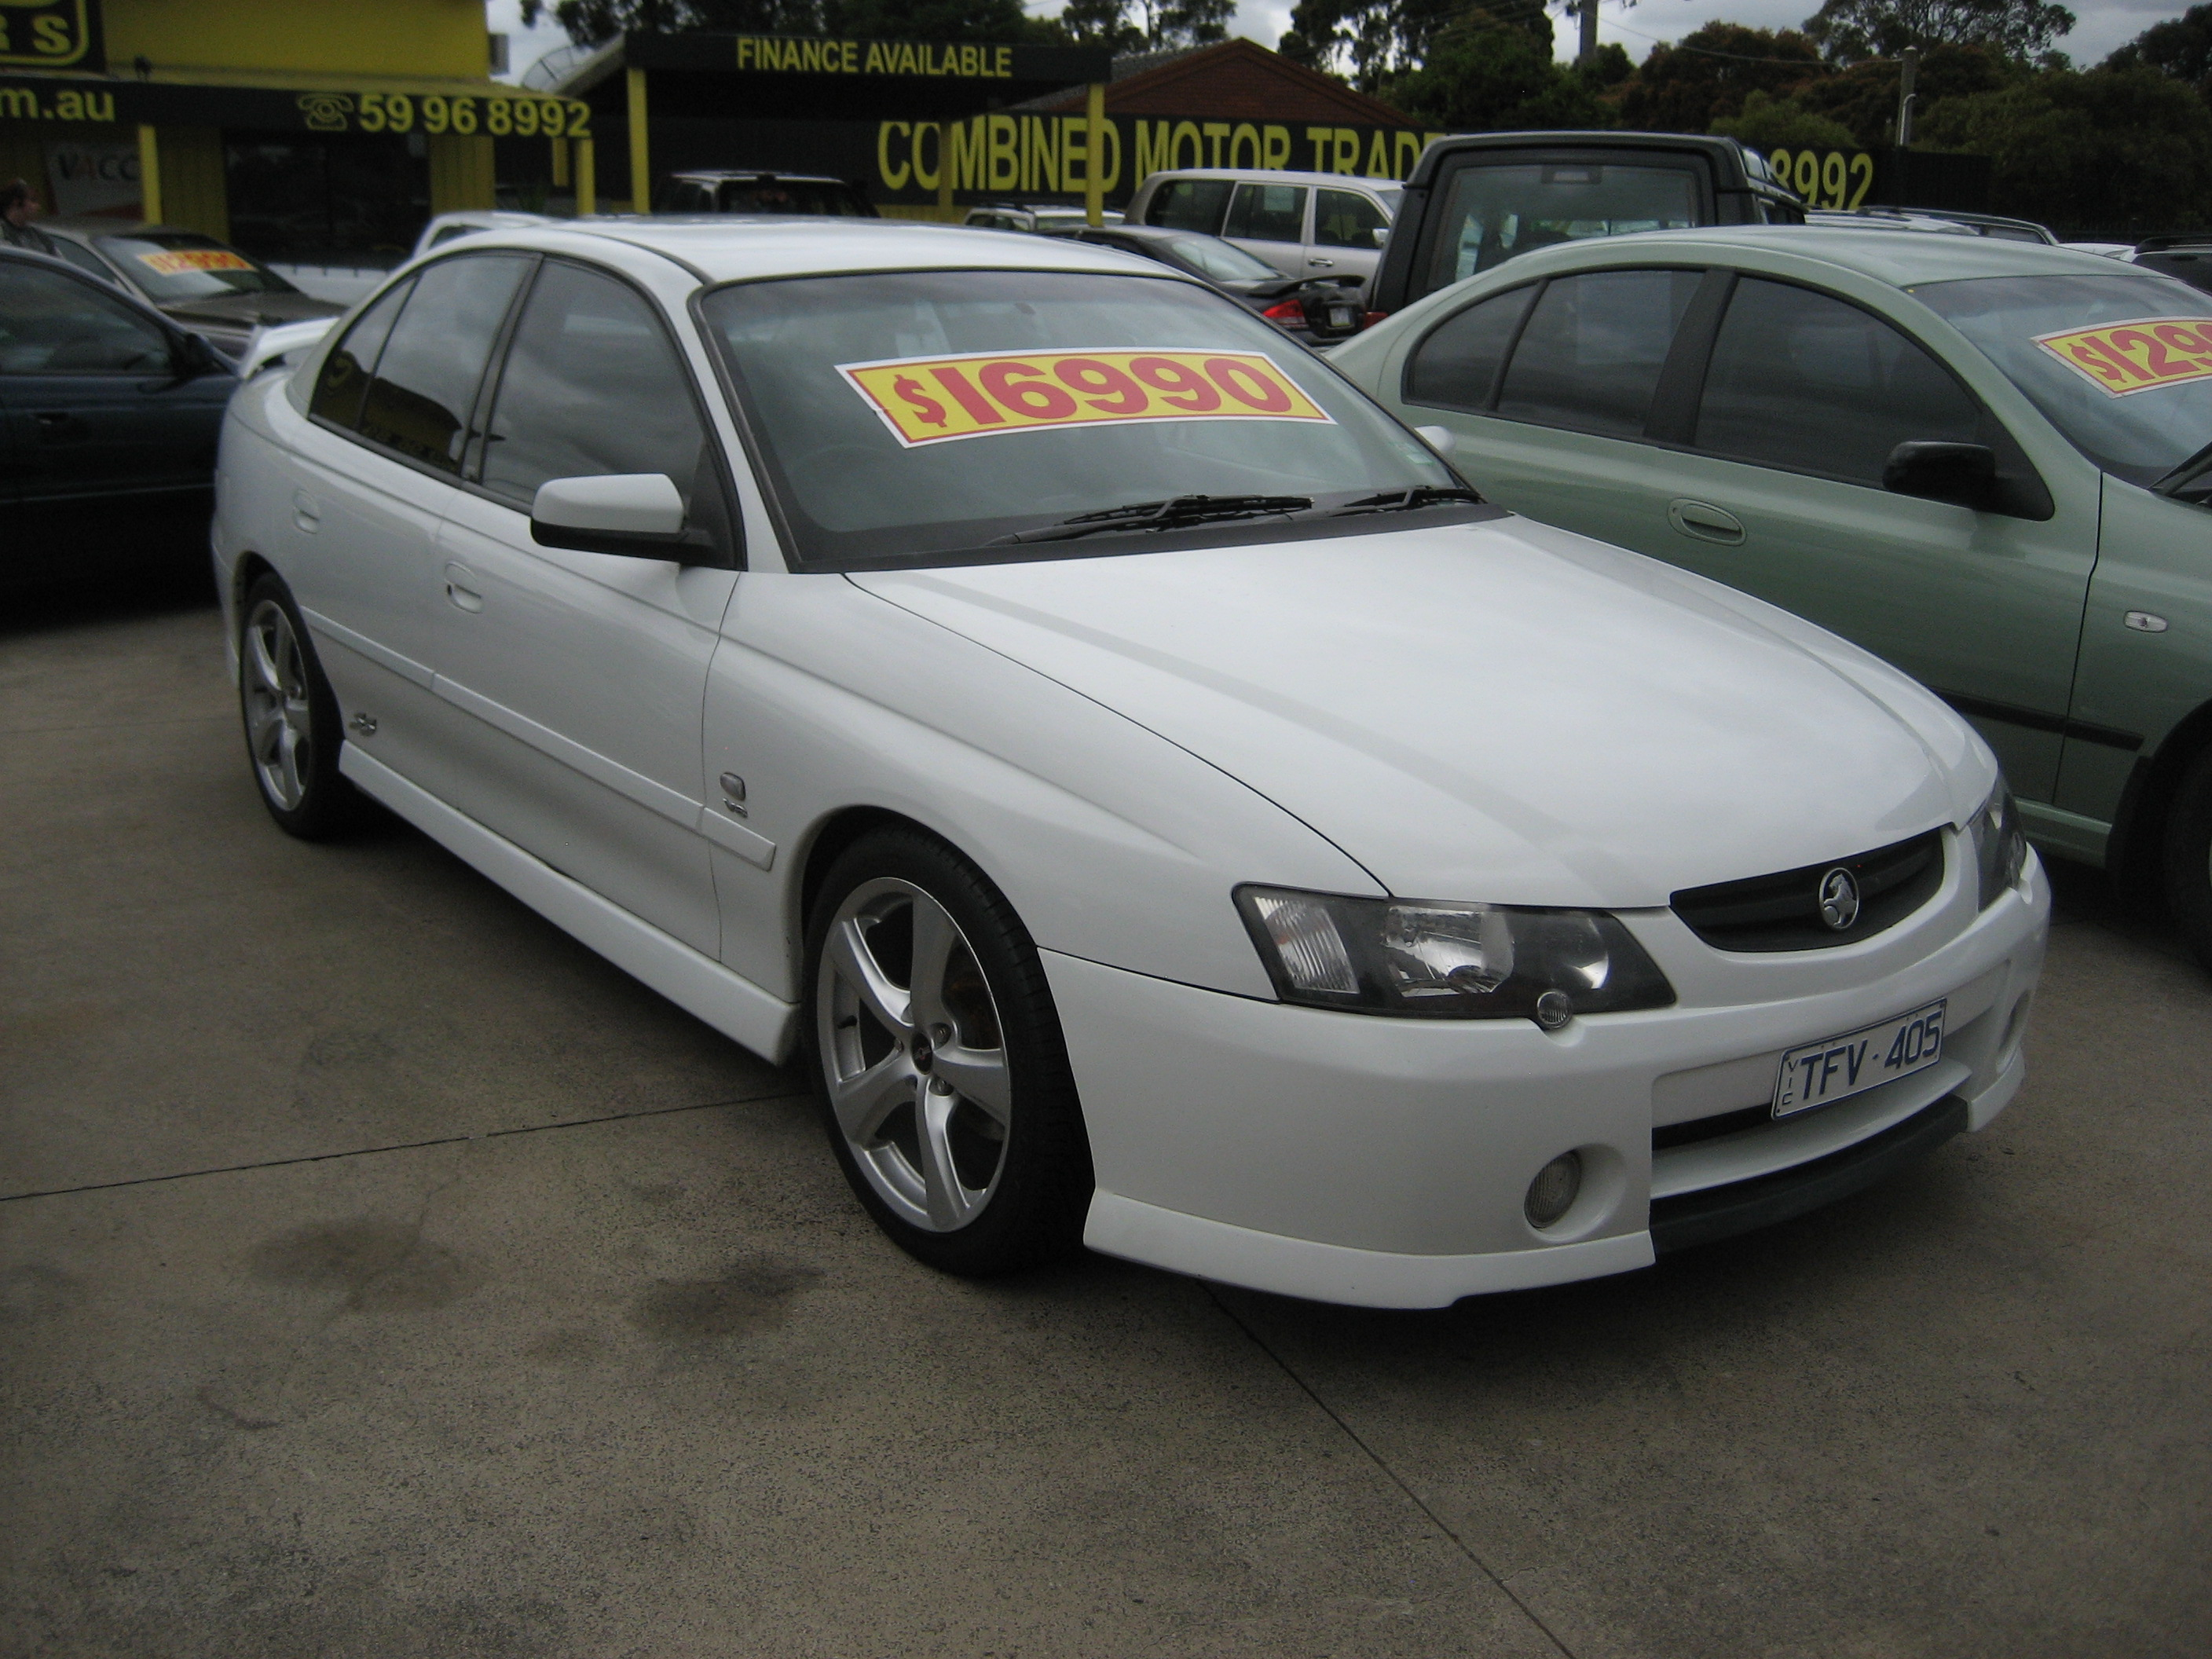 File2002 2003 holden commodore vy ss sedan 2010 12 20g file2002 2003 holden commodore vy ss sedan 2010 12 vanachro Images